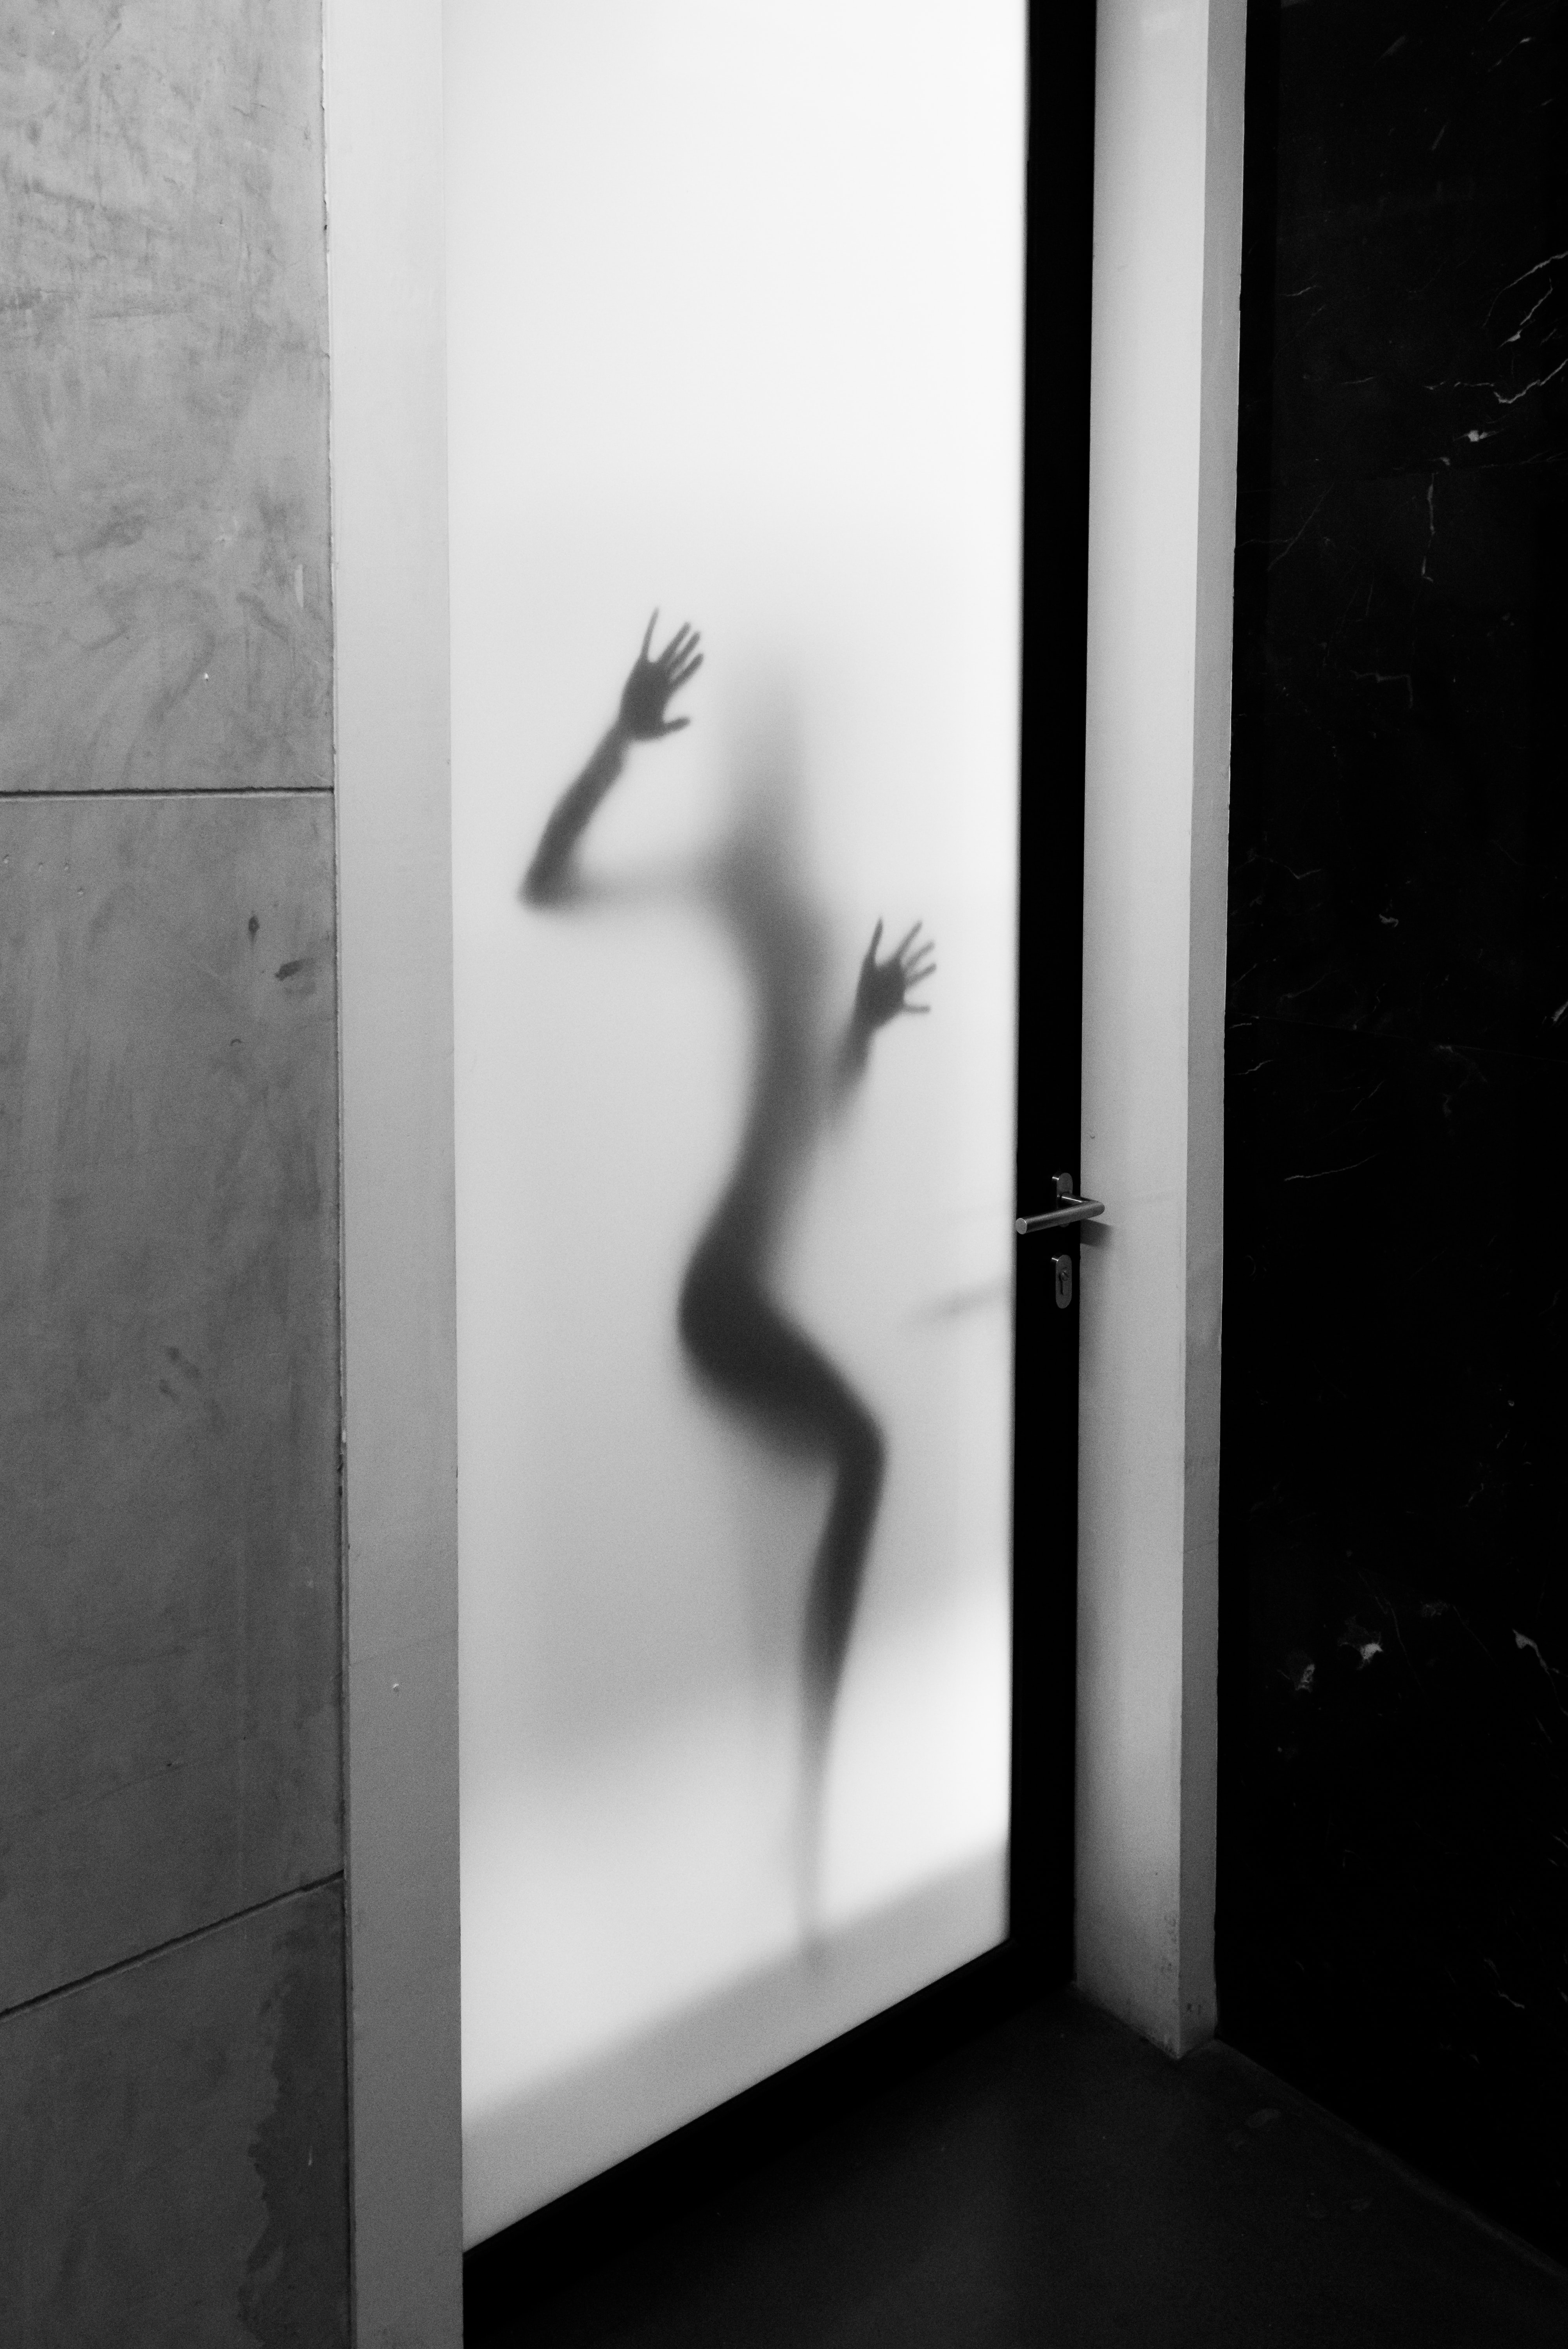 shadow of person against white panel glass door